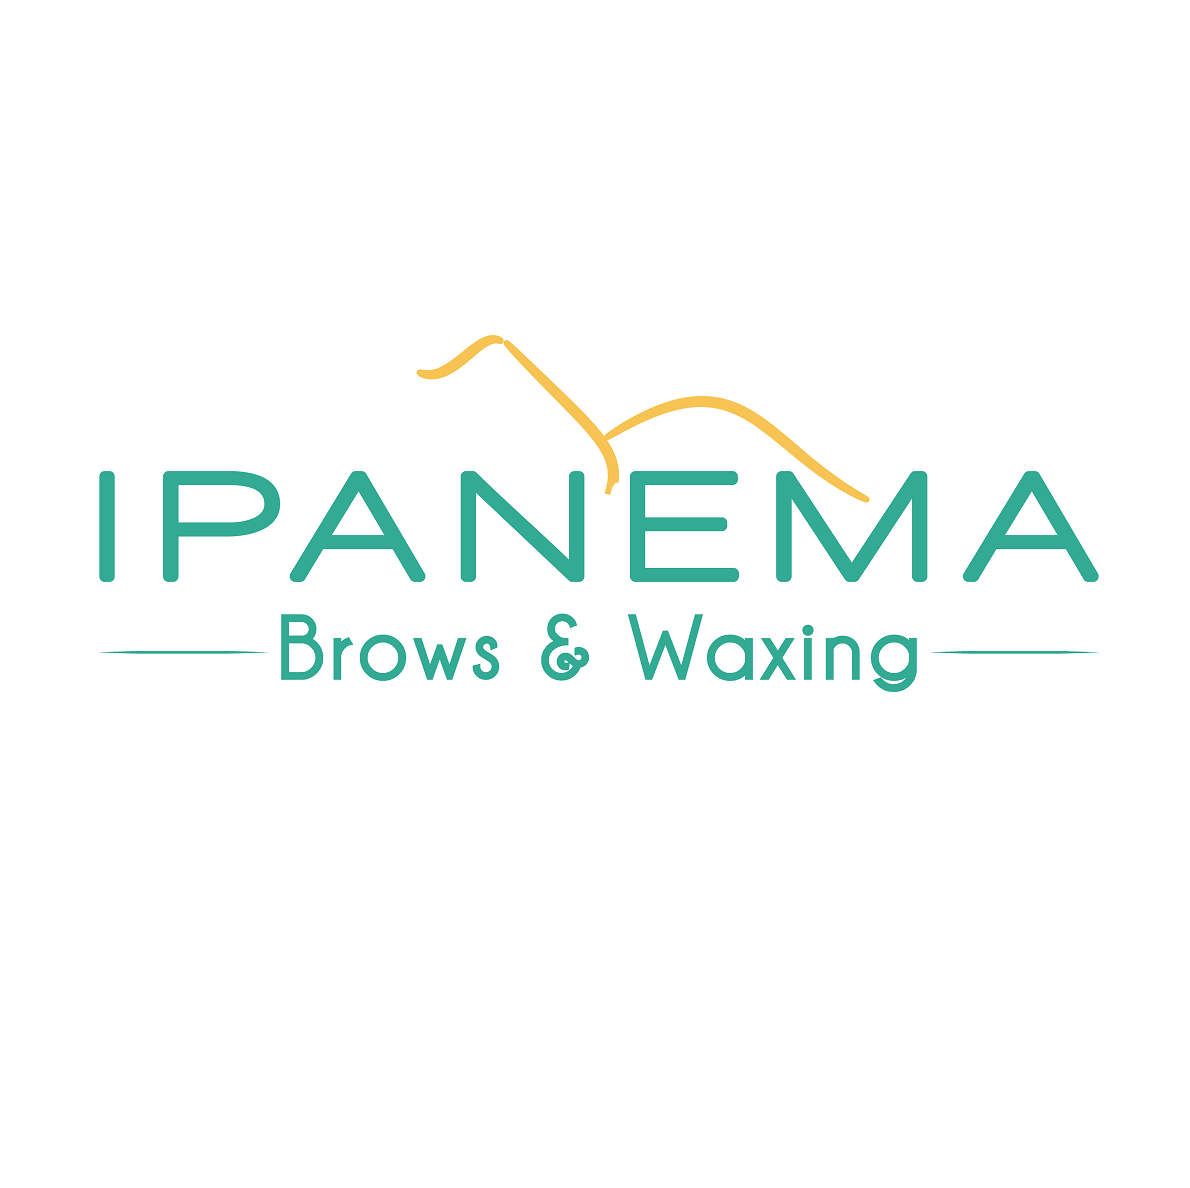 Ipanema Brows and Waxing